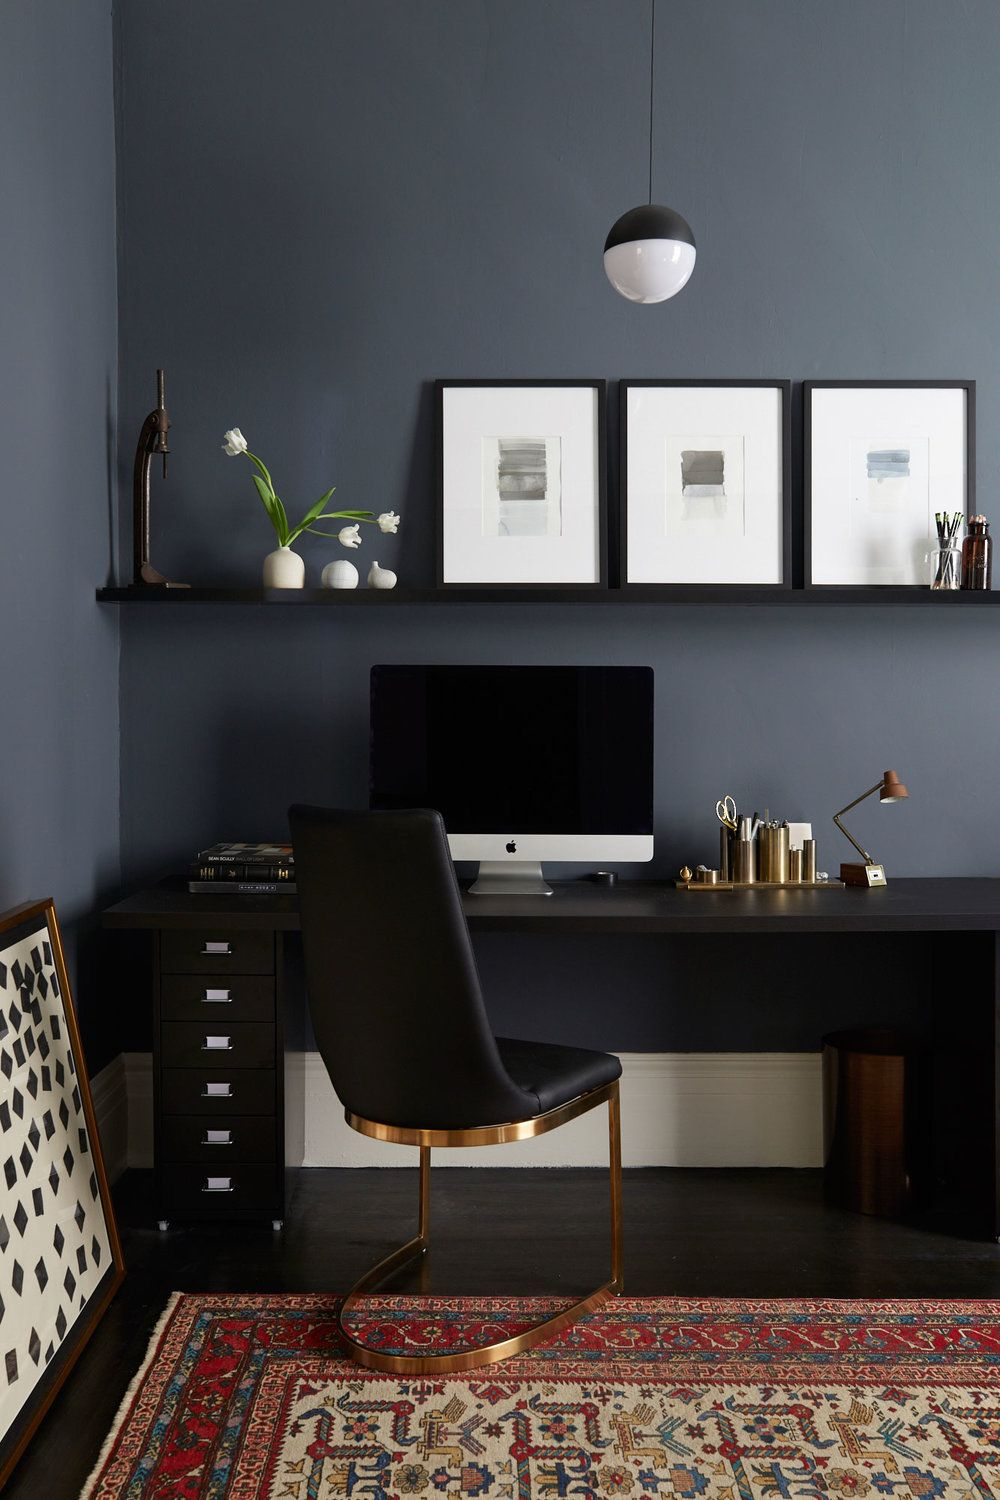 28 Best Home Office Ideas - Home Office Decor Photos